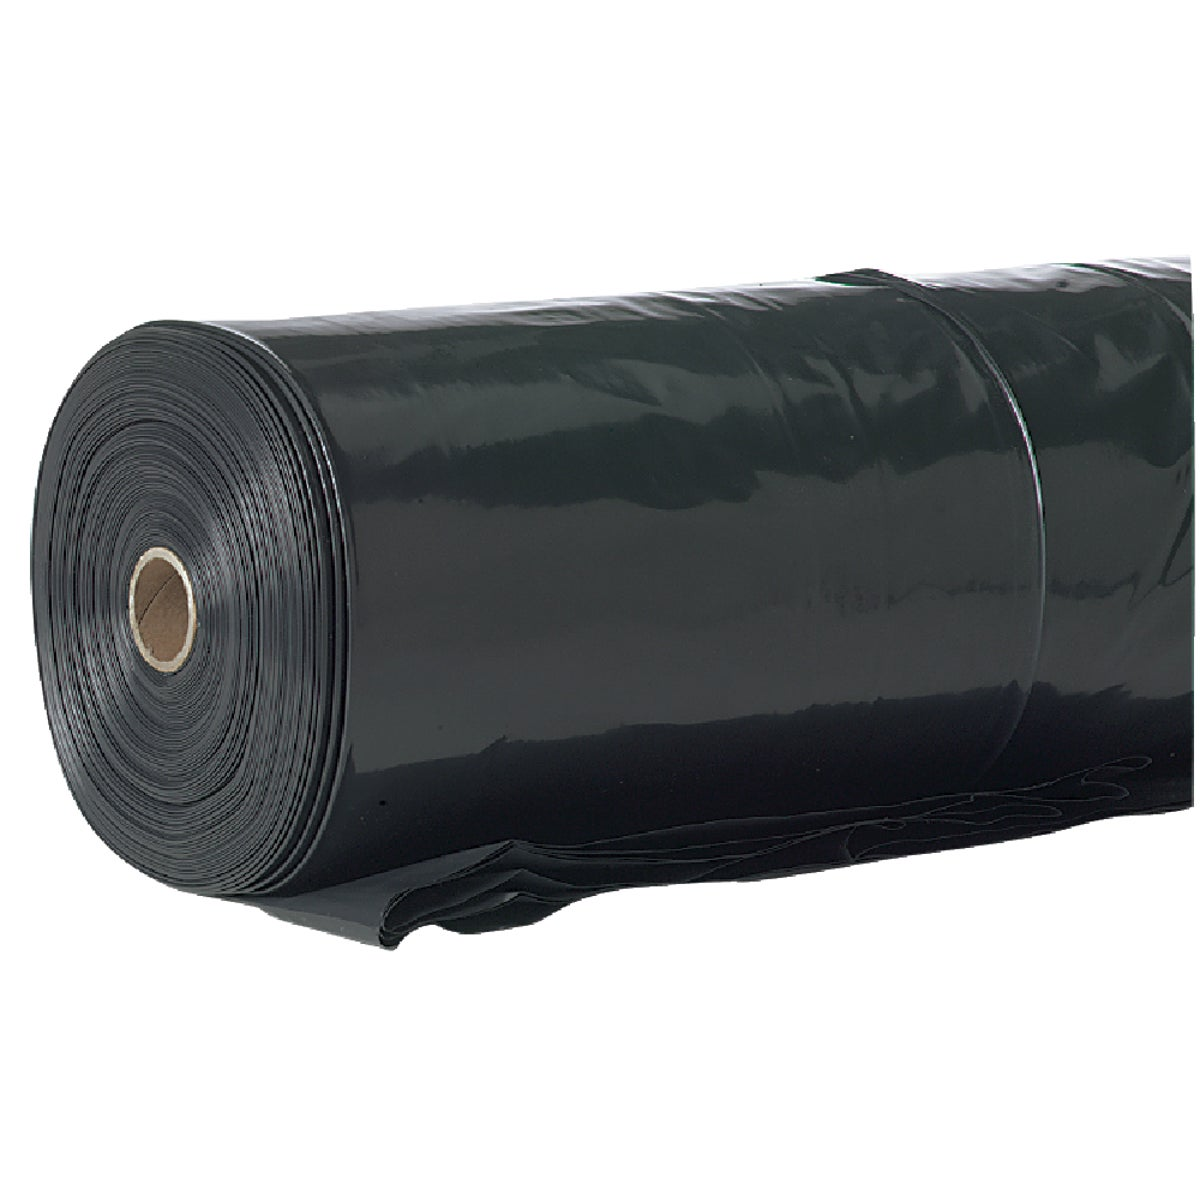 20X100 4M BLK POLY FILM - 625949 by Berry Plastics